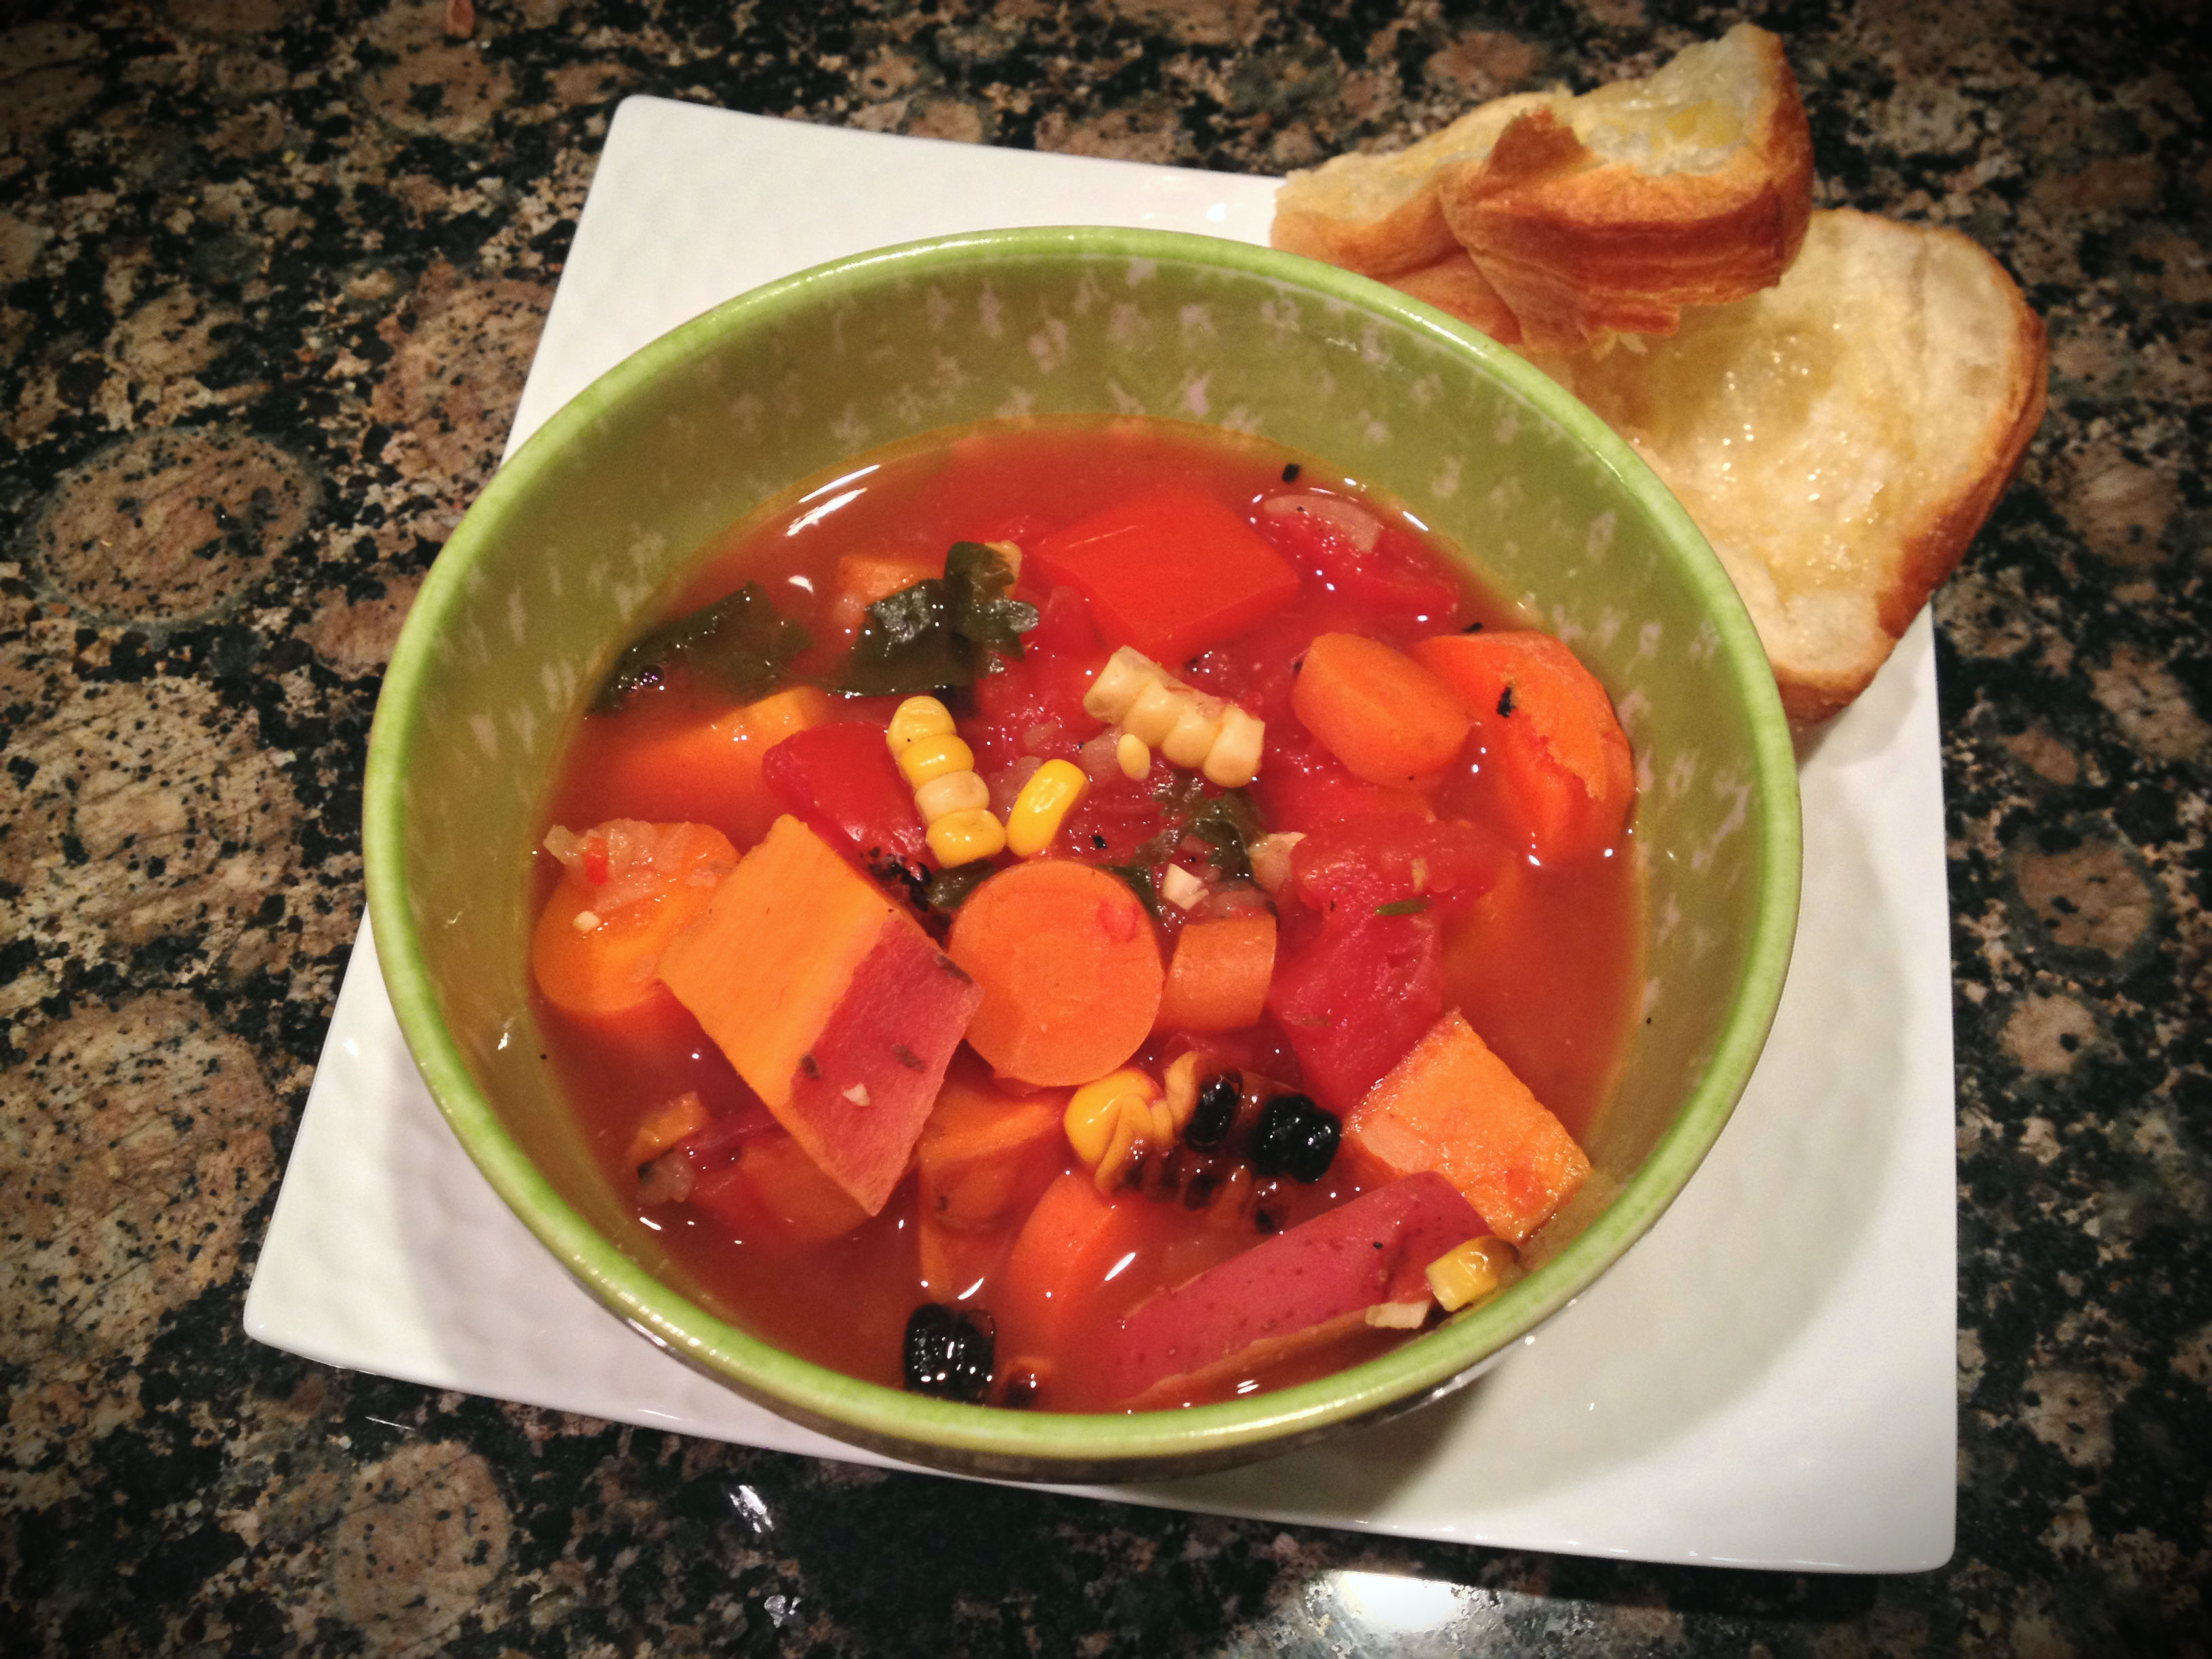 Busy Week Ahead {Vegetable Tomato Soup} (Learn. Act. Live. Love.)